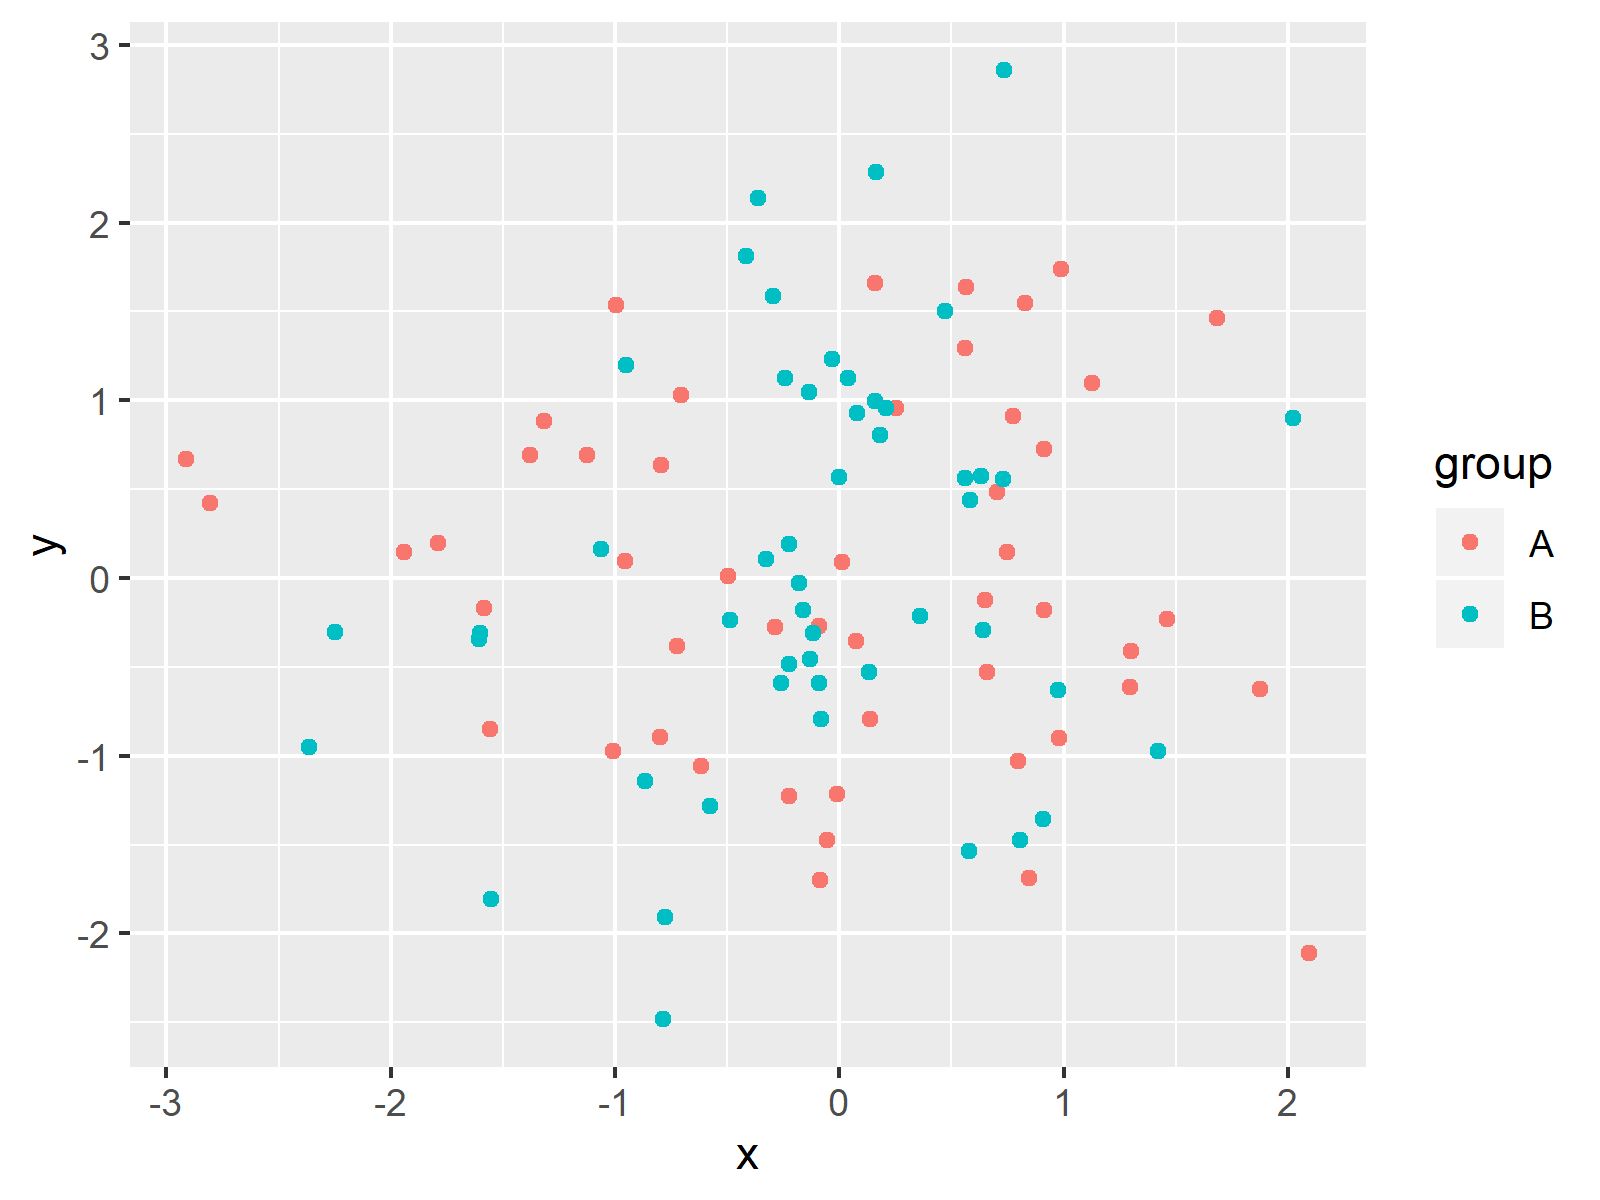 ggplot2 Plot with Legend Title in R